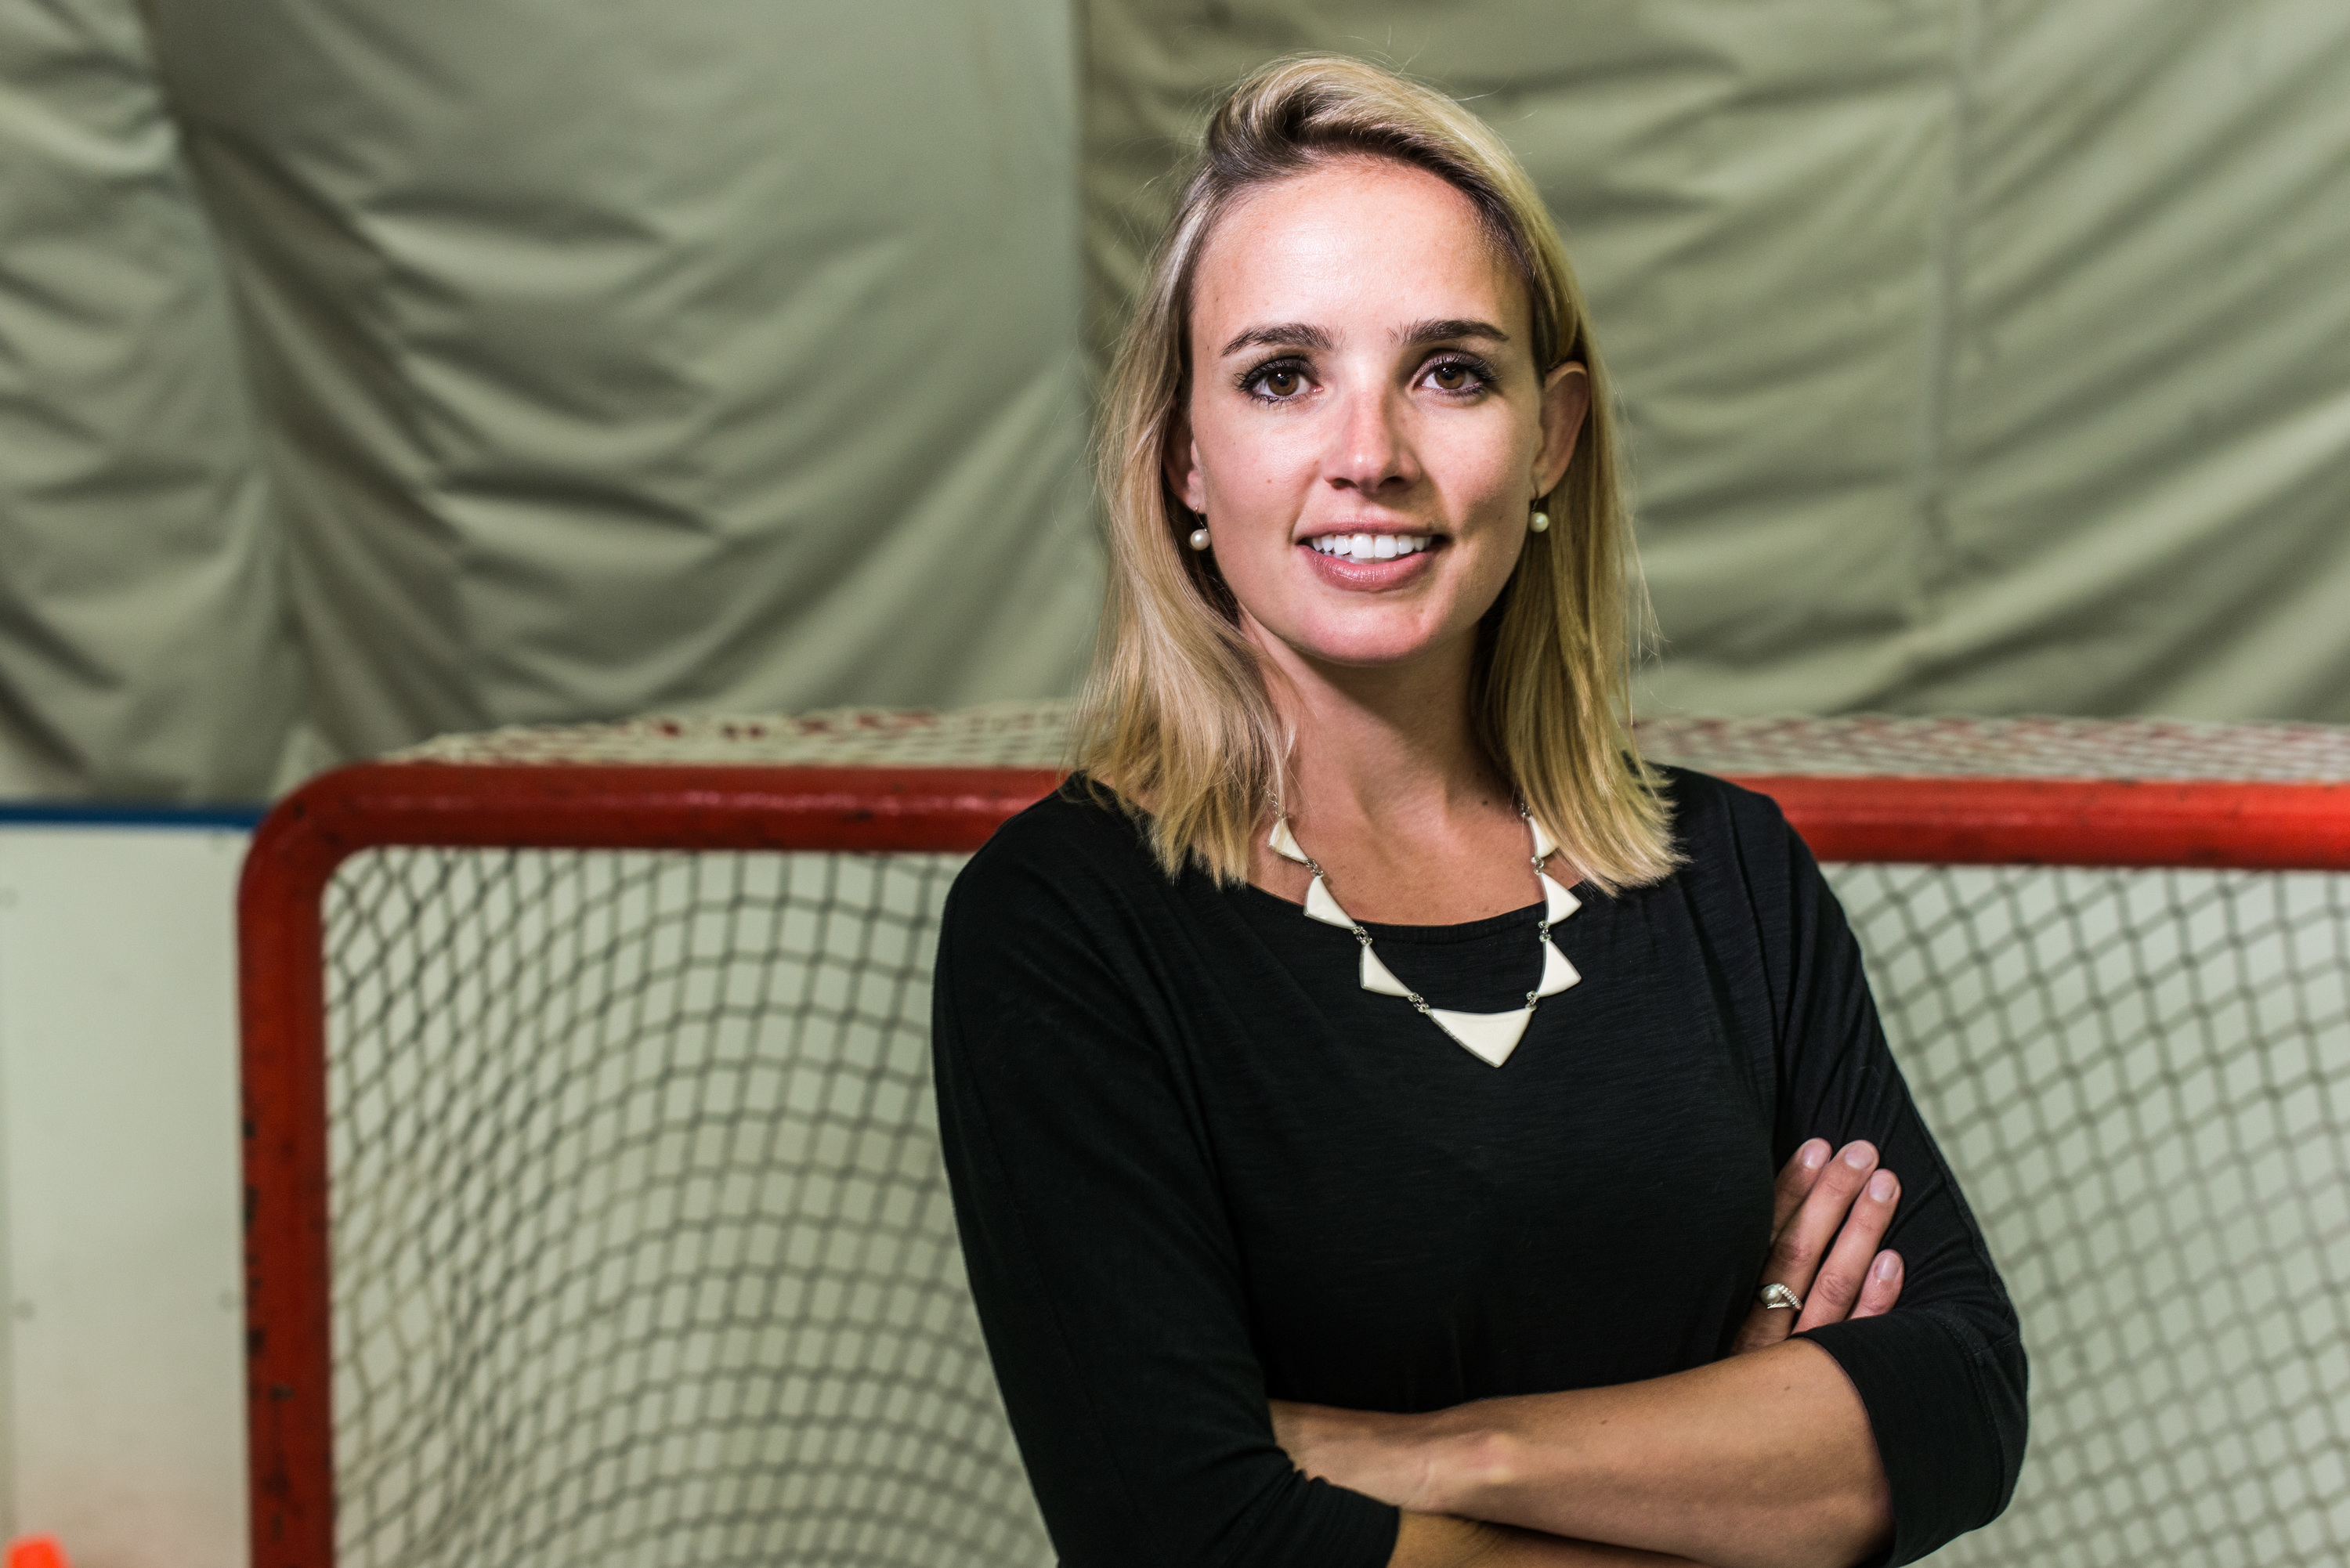 Meet Dani Rylan, the commissioner of the first professional women's hockey league in the U.S.A.